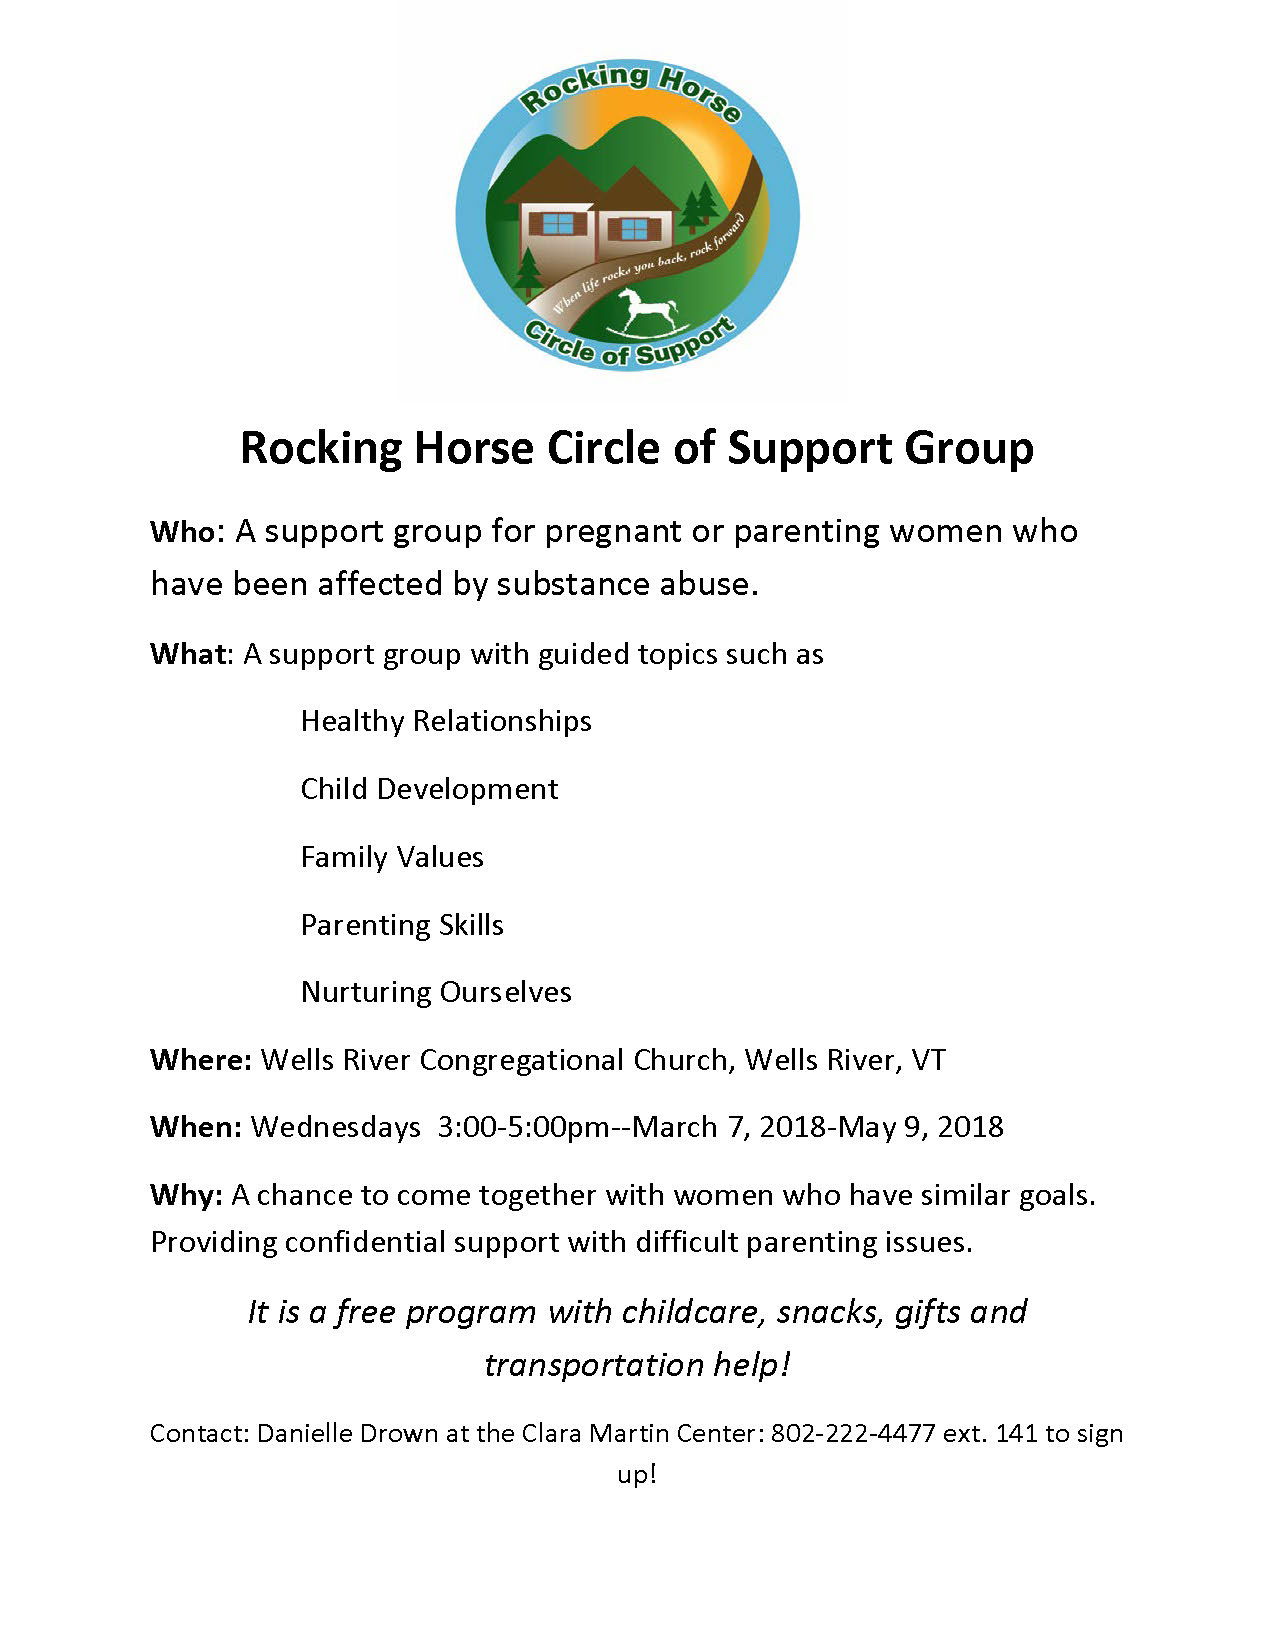 Rocking Horse Circle of Support Flyer